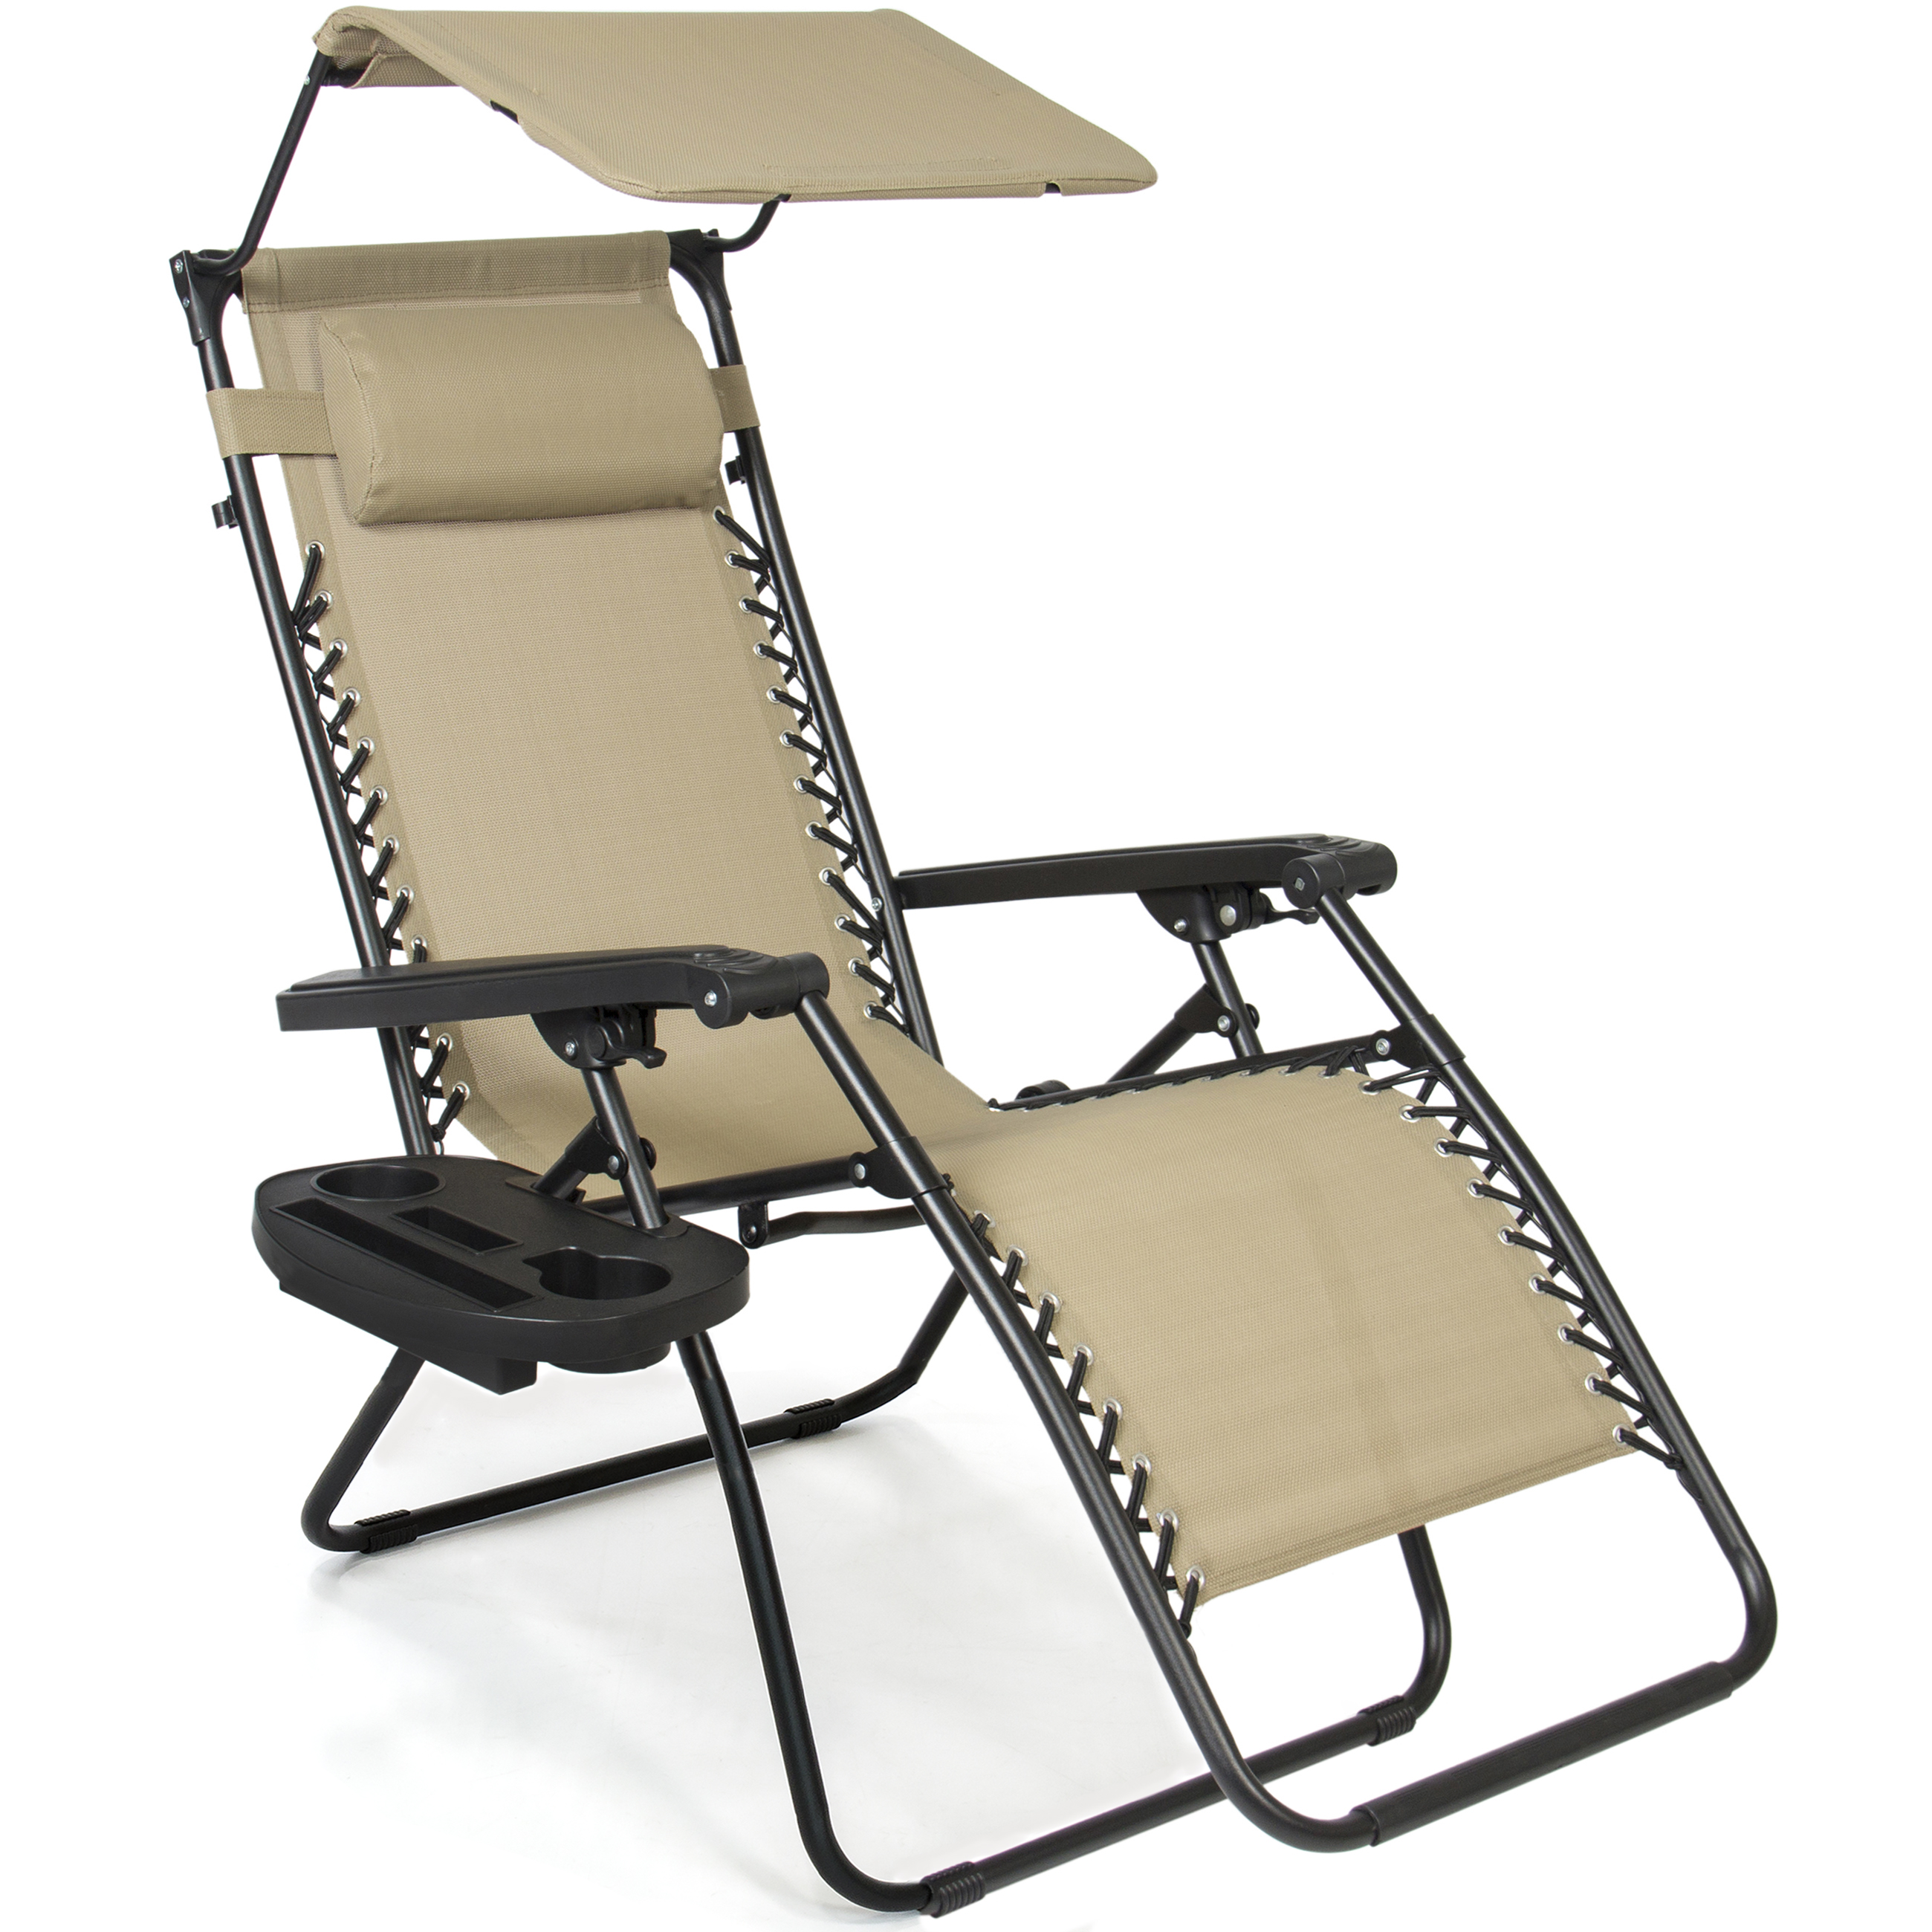 Folding Zero Gravity Recliner Lounge Chair With Canopy Shade u0026 Magazine Cup Holder  sc 1 st  Walmart : zero recliner - islam-shia.org